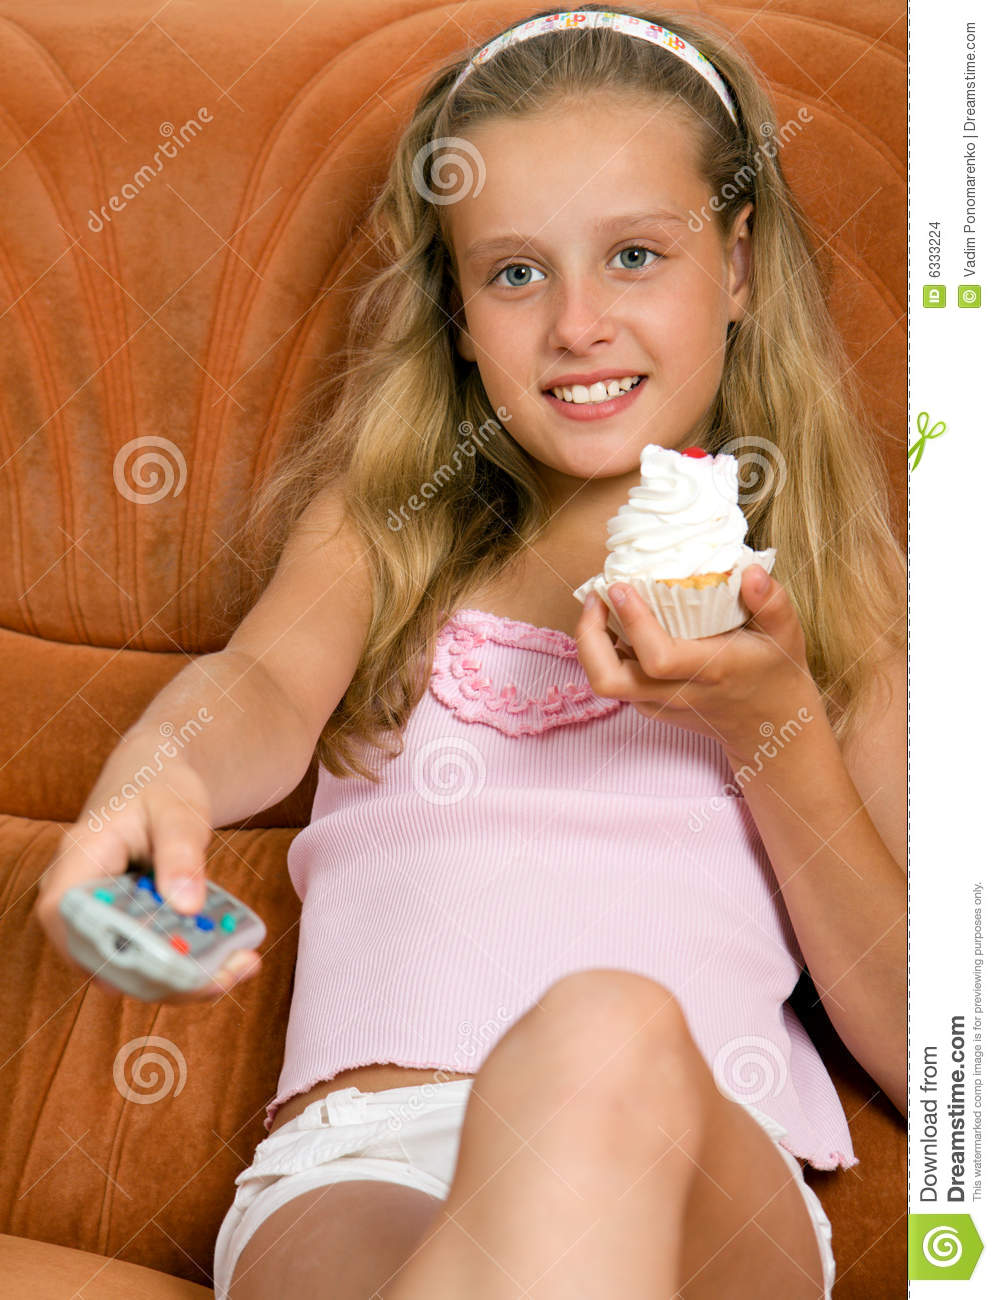 Child watching tv and eating cake